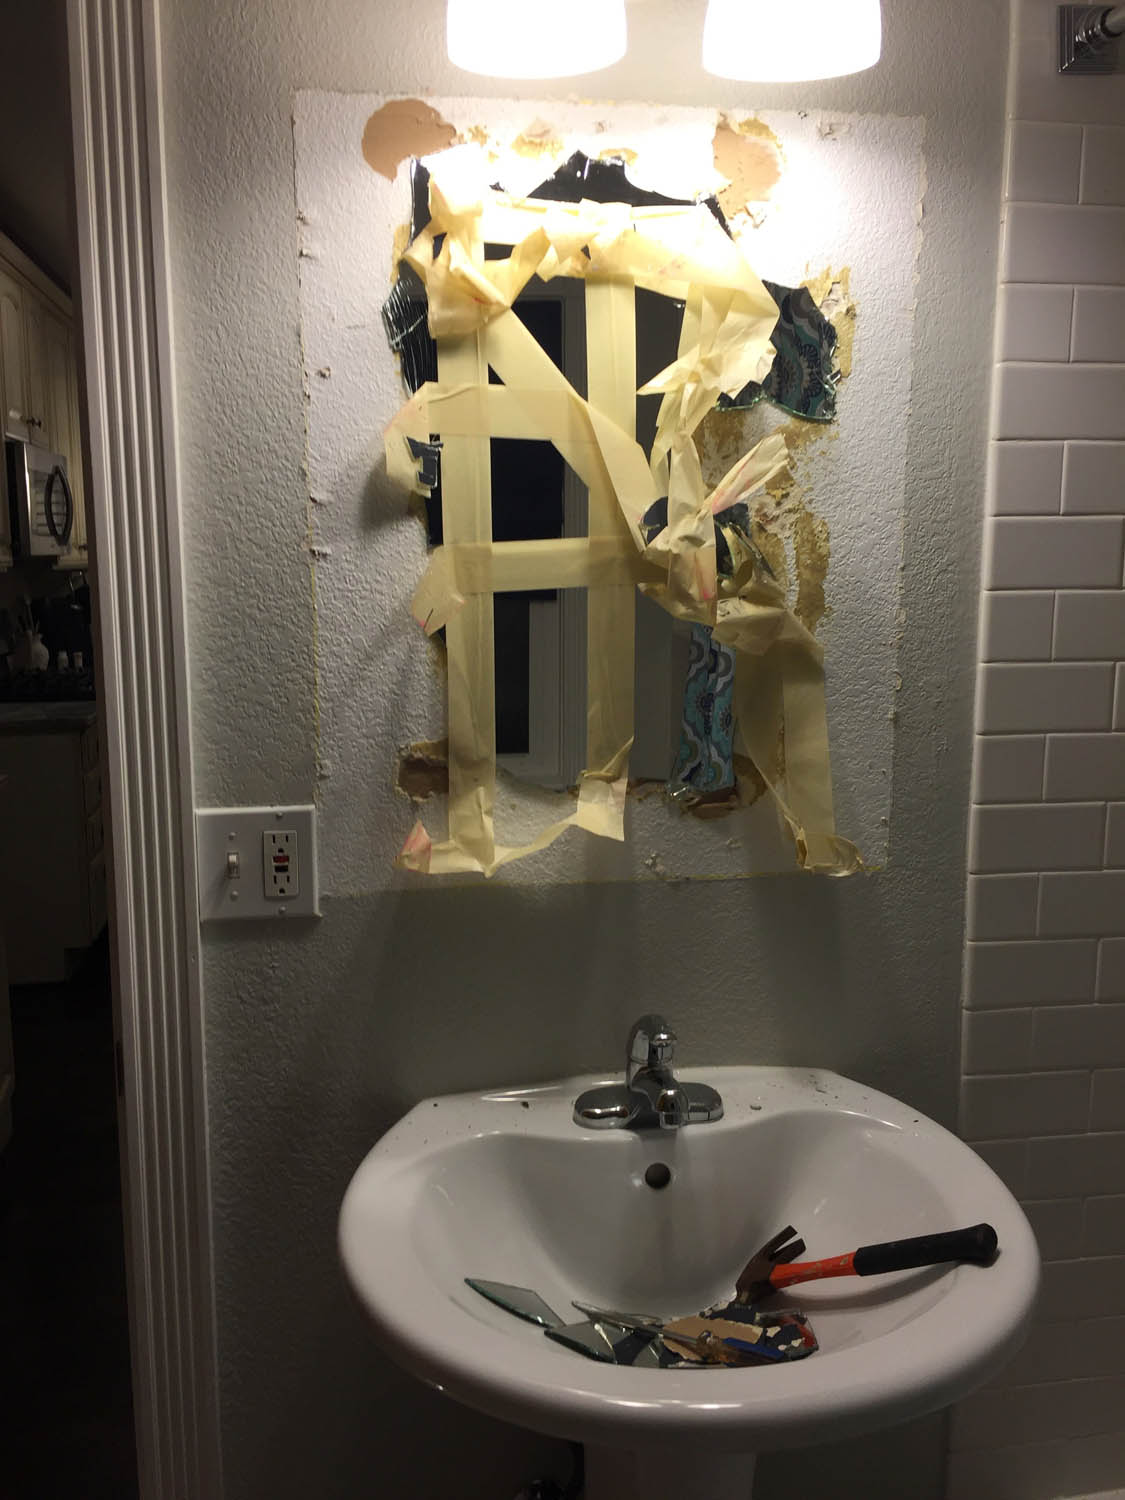 Removing old mirror that was heavily glued on the back